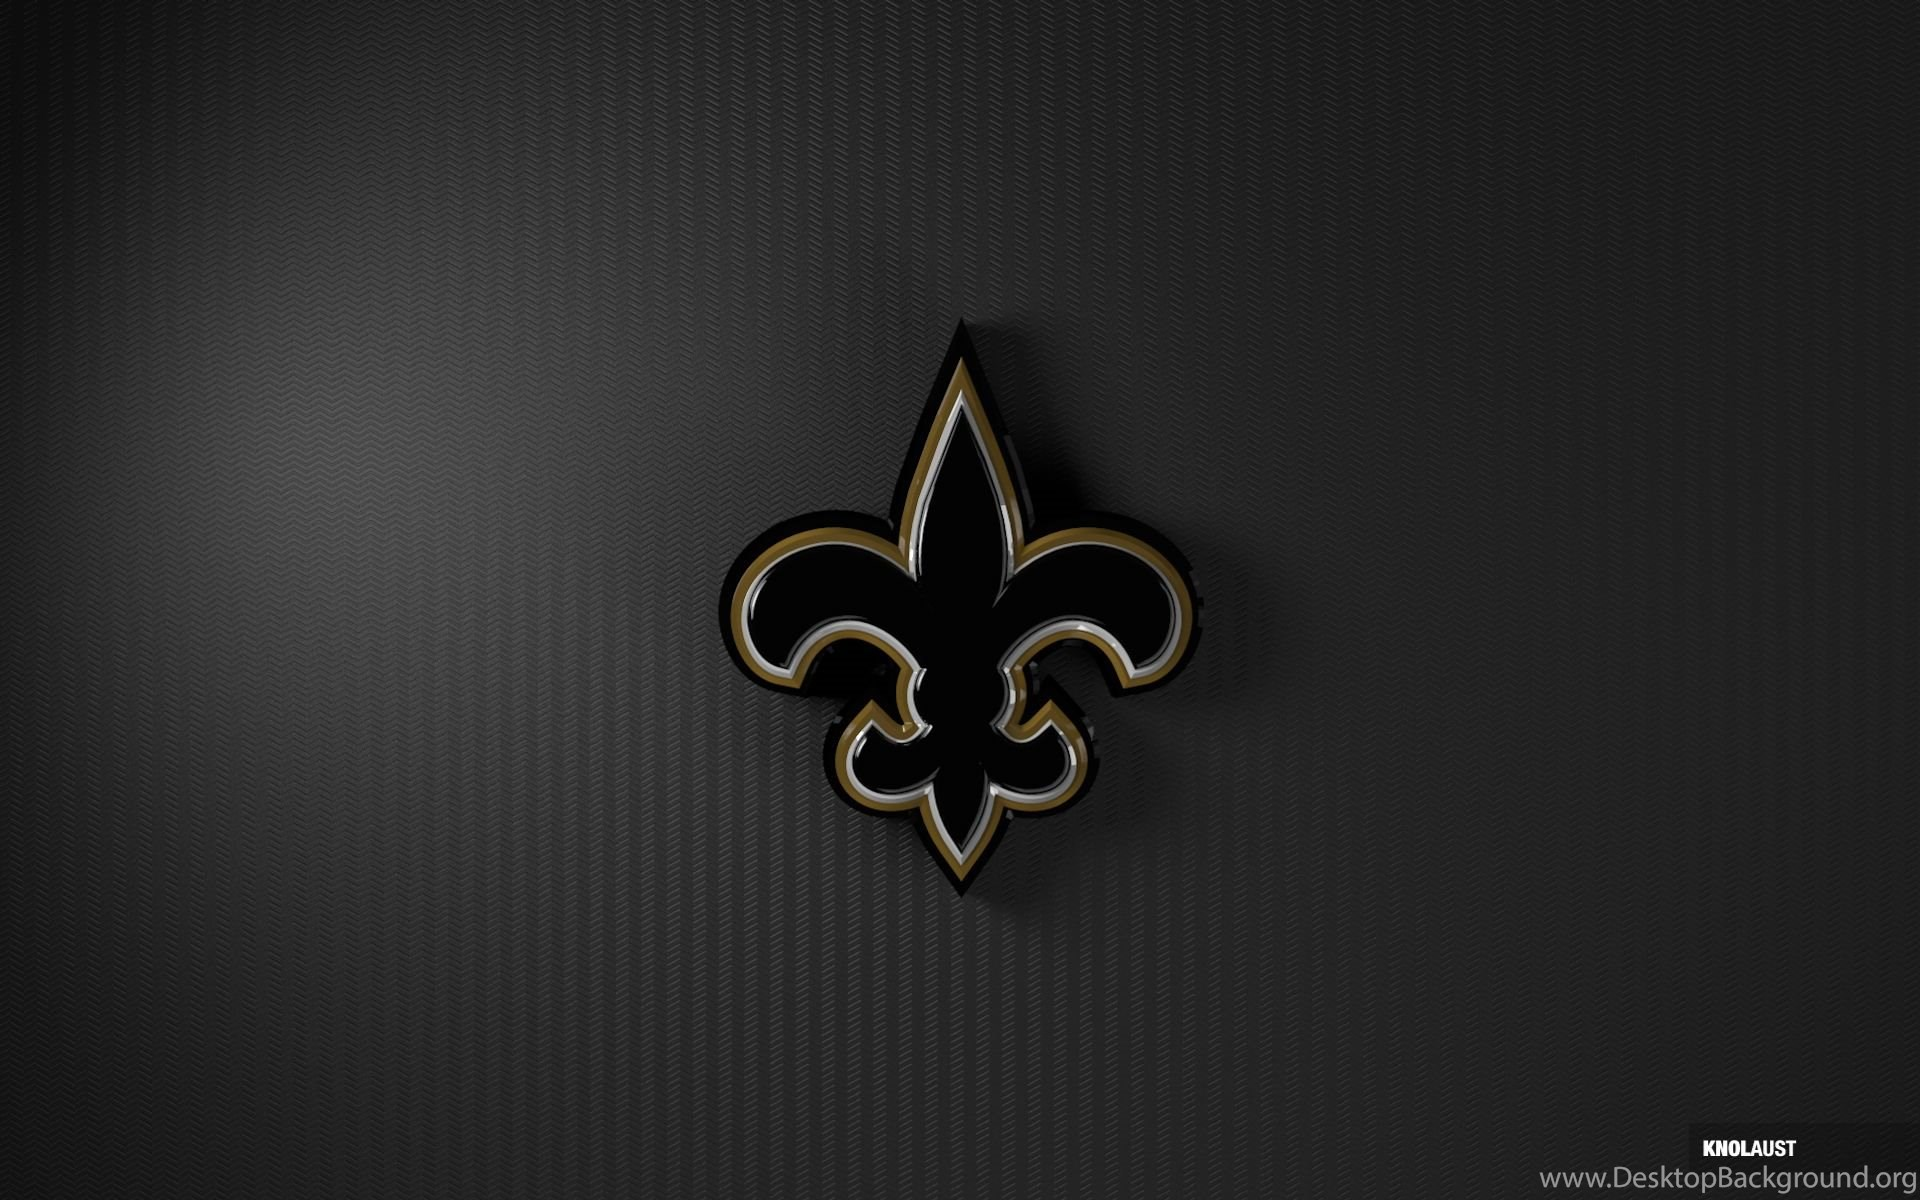 New Orleans Saints Wallpapers Hd Desktop Background